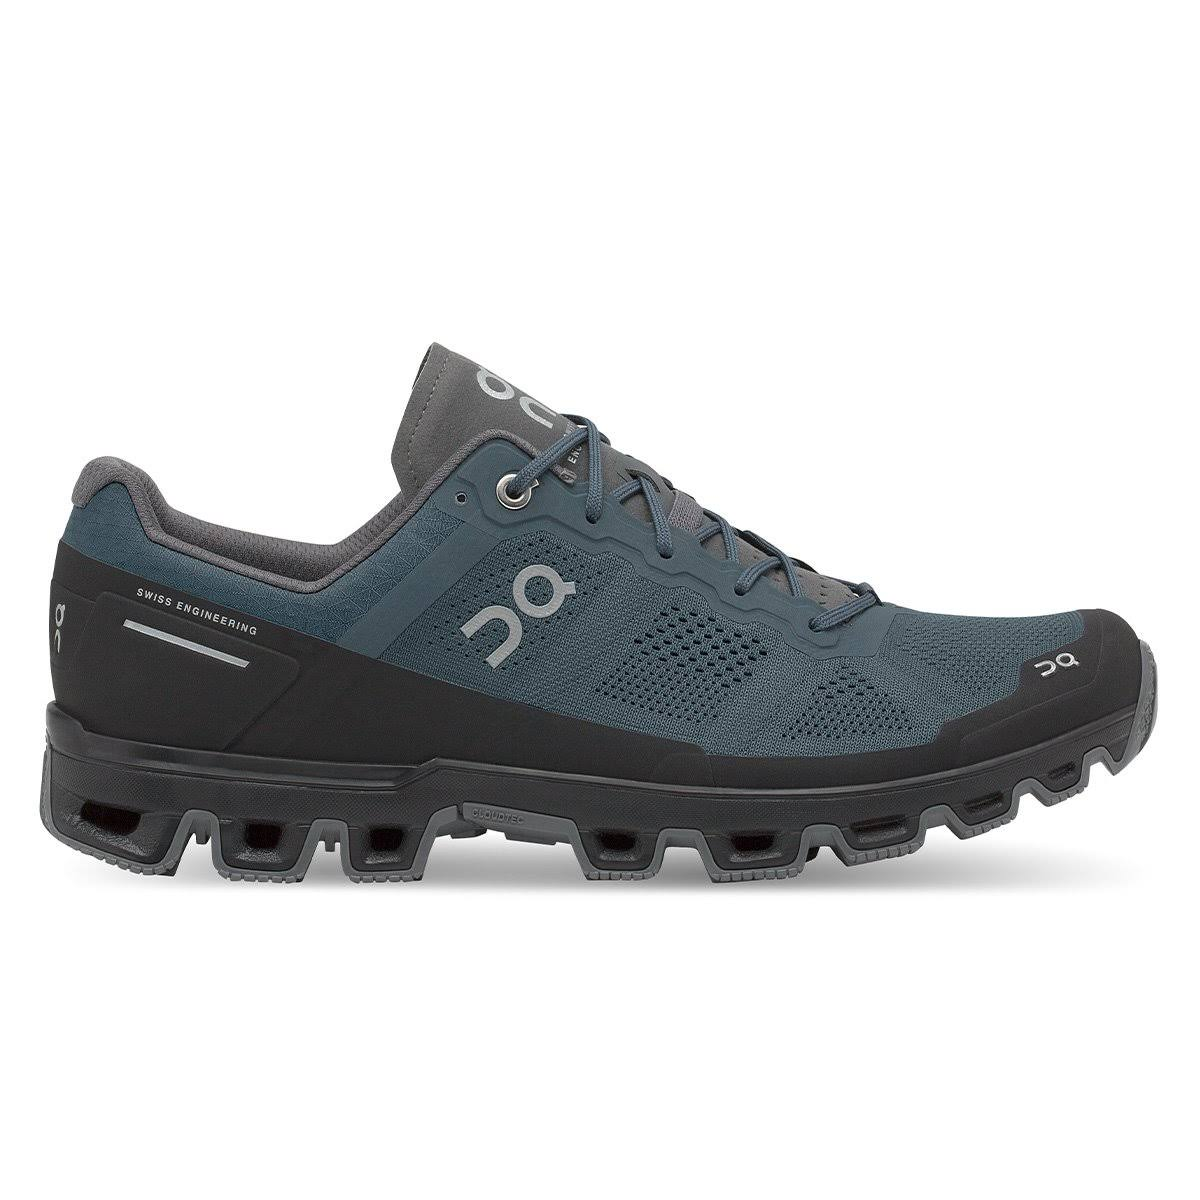 on Cloudventure Men's Trail Running Shoes Shadow/Rock